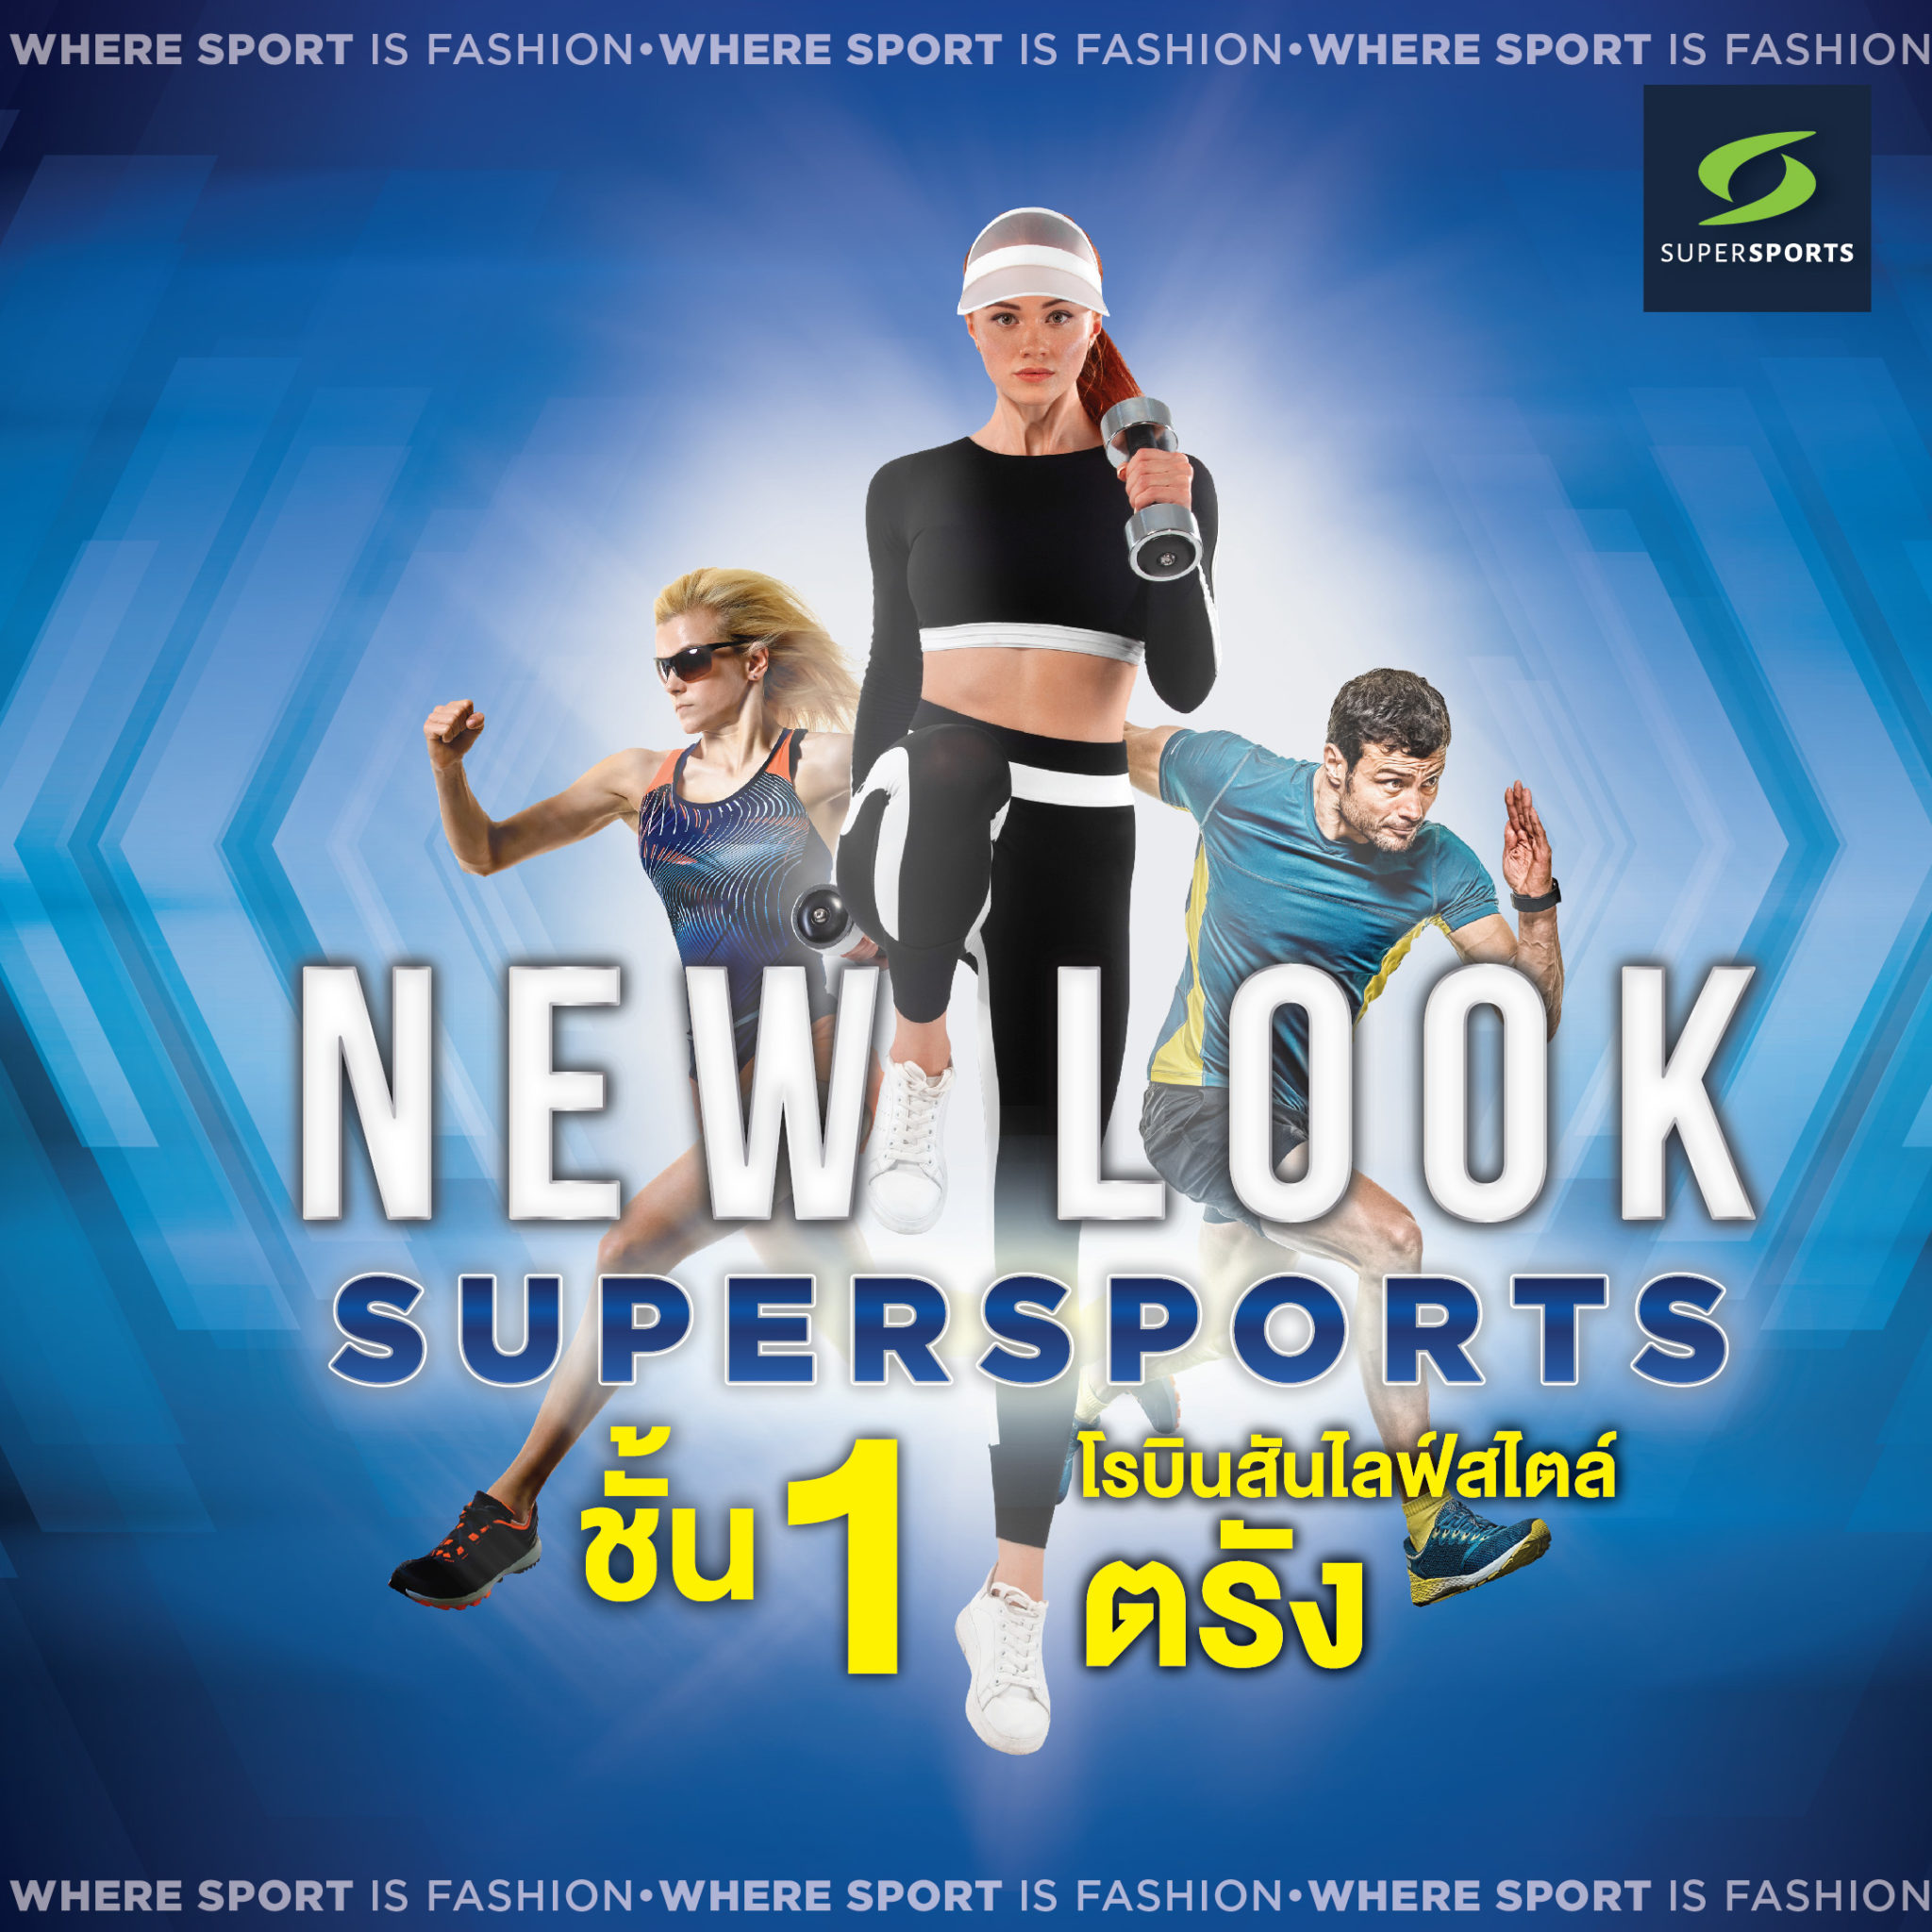 SUPERSPORTS NEW LOOK @ROBINSON LIFESTYLE TRANG